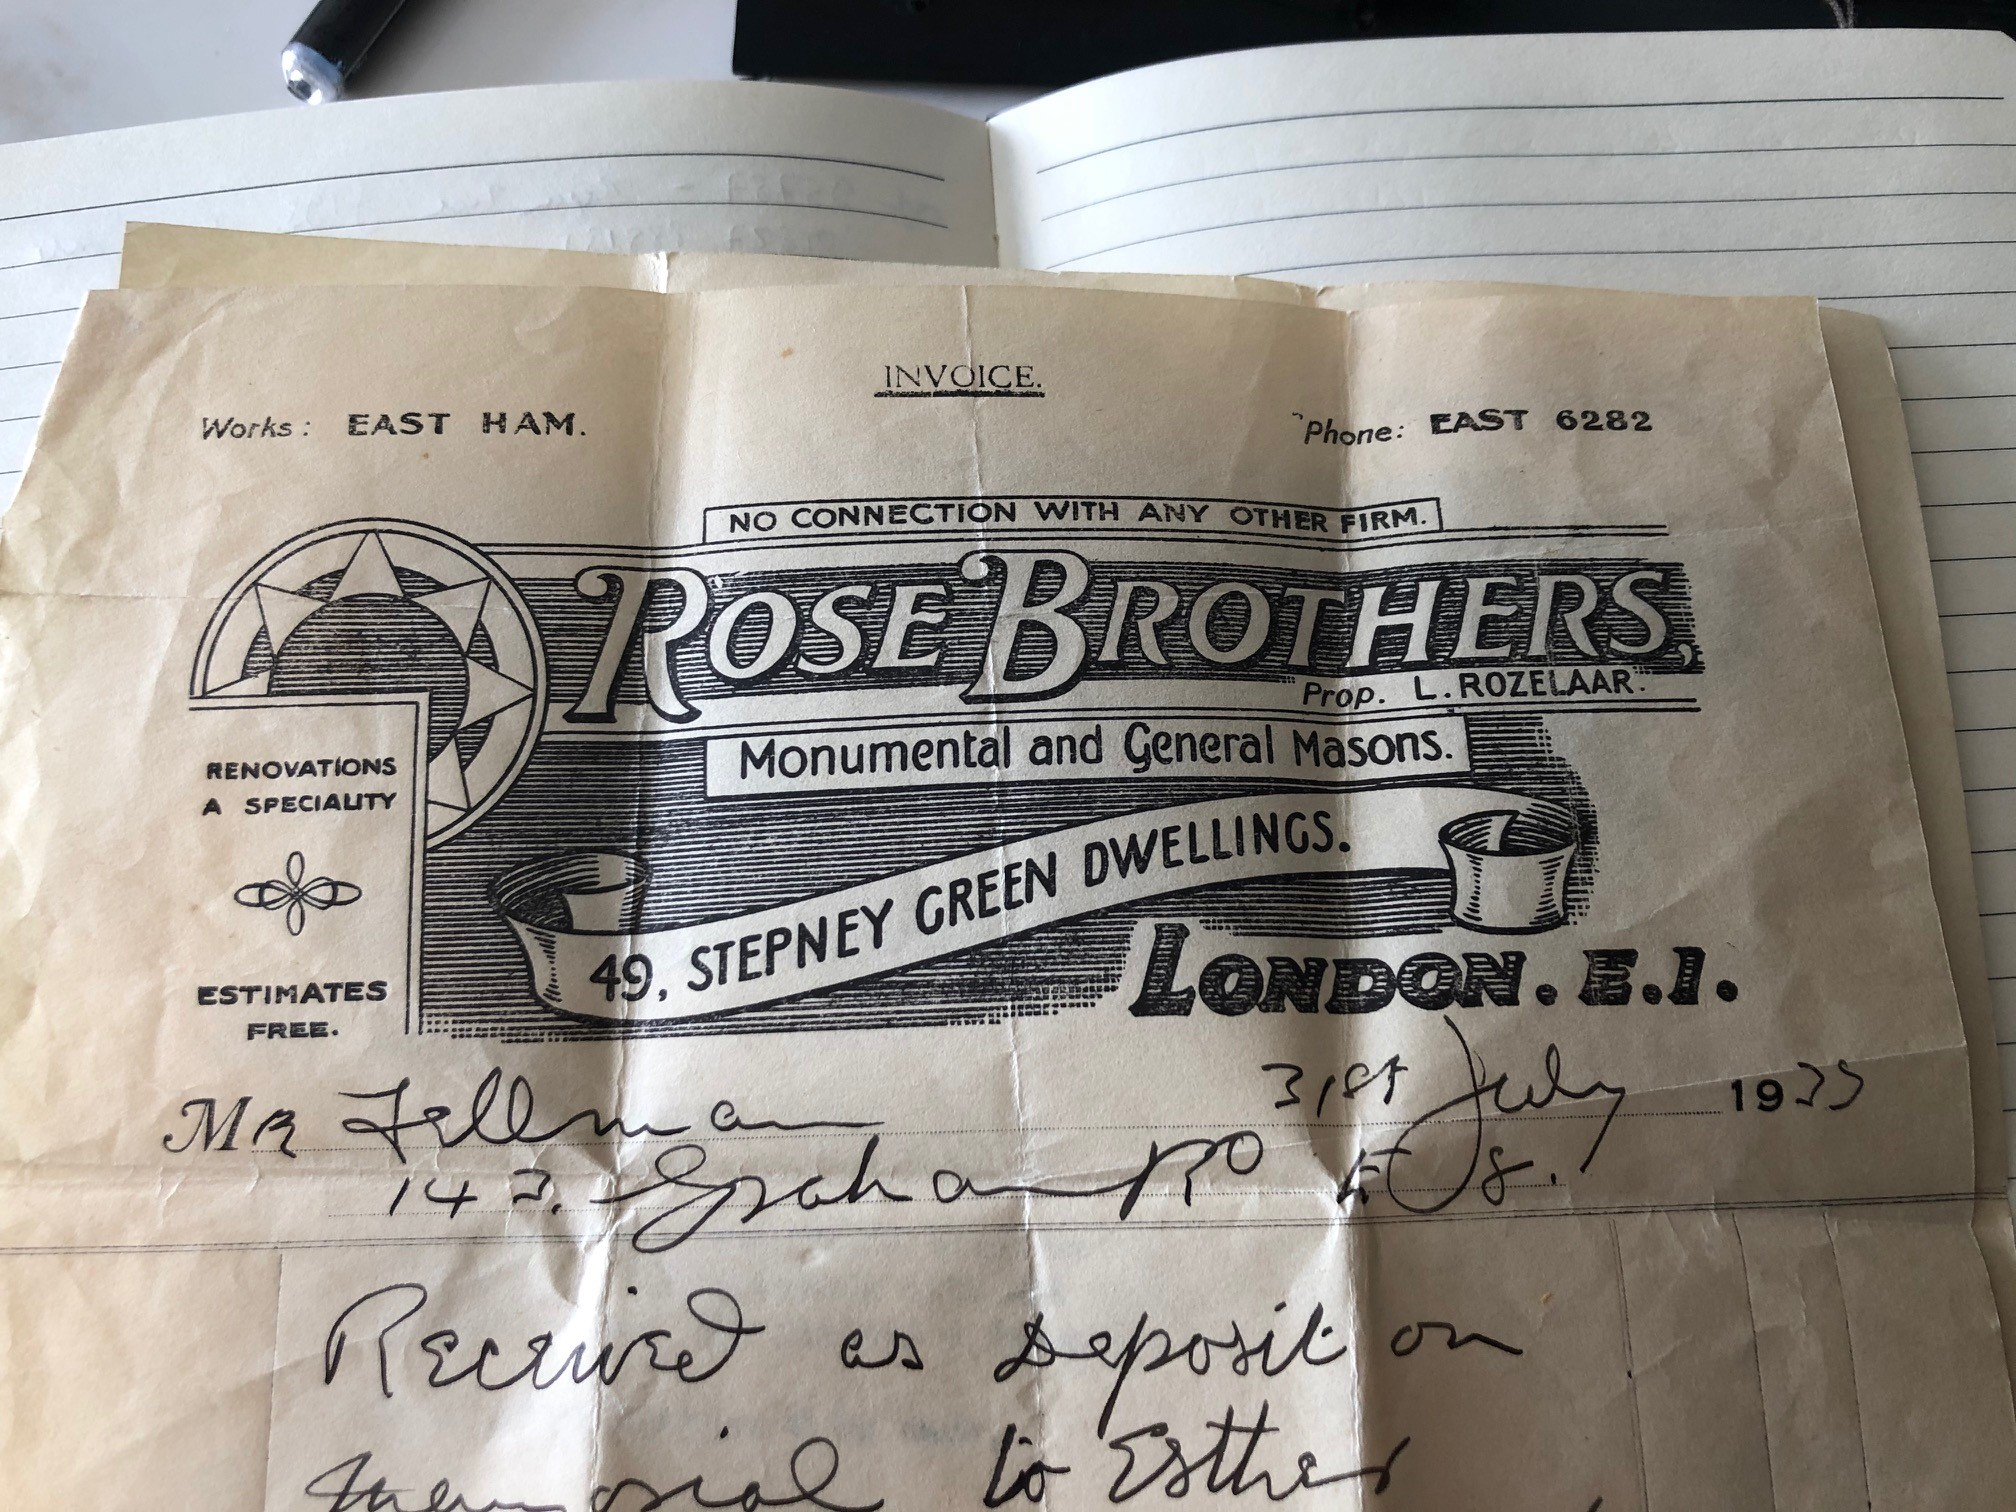 New information from an invoice dated 1933